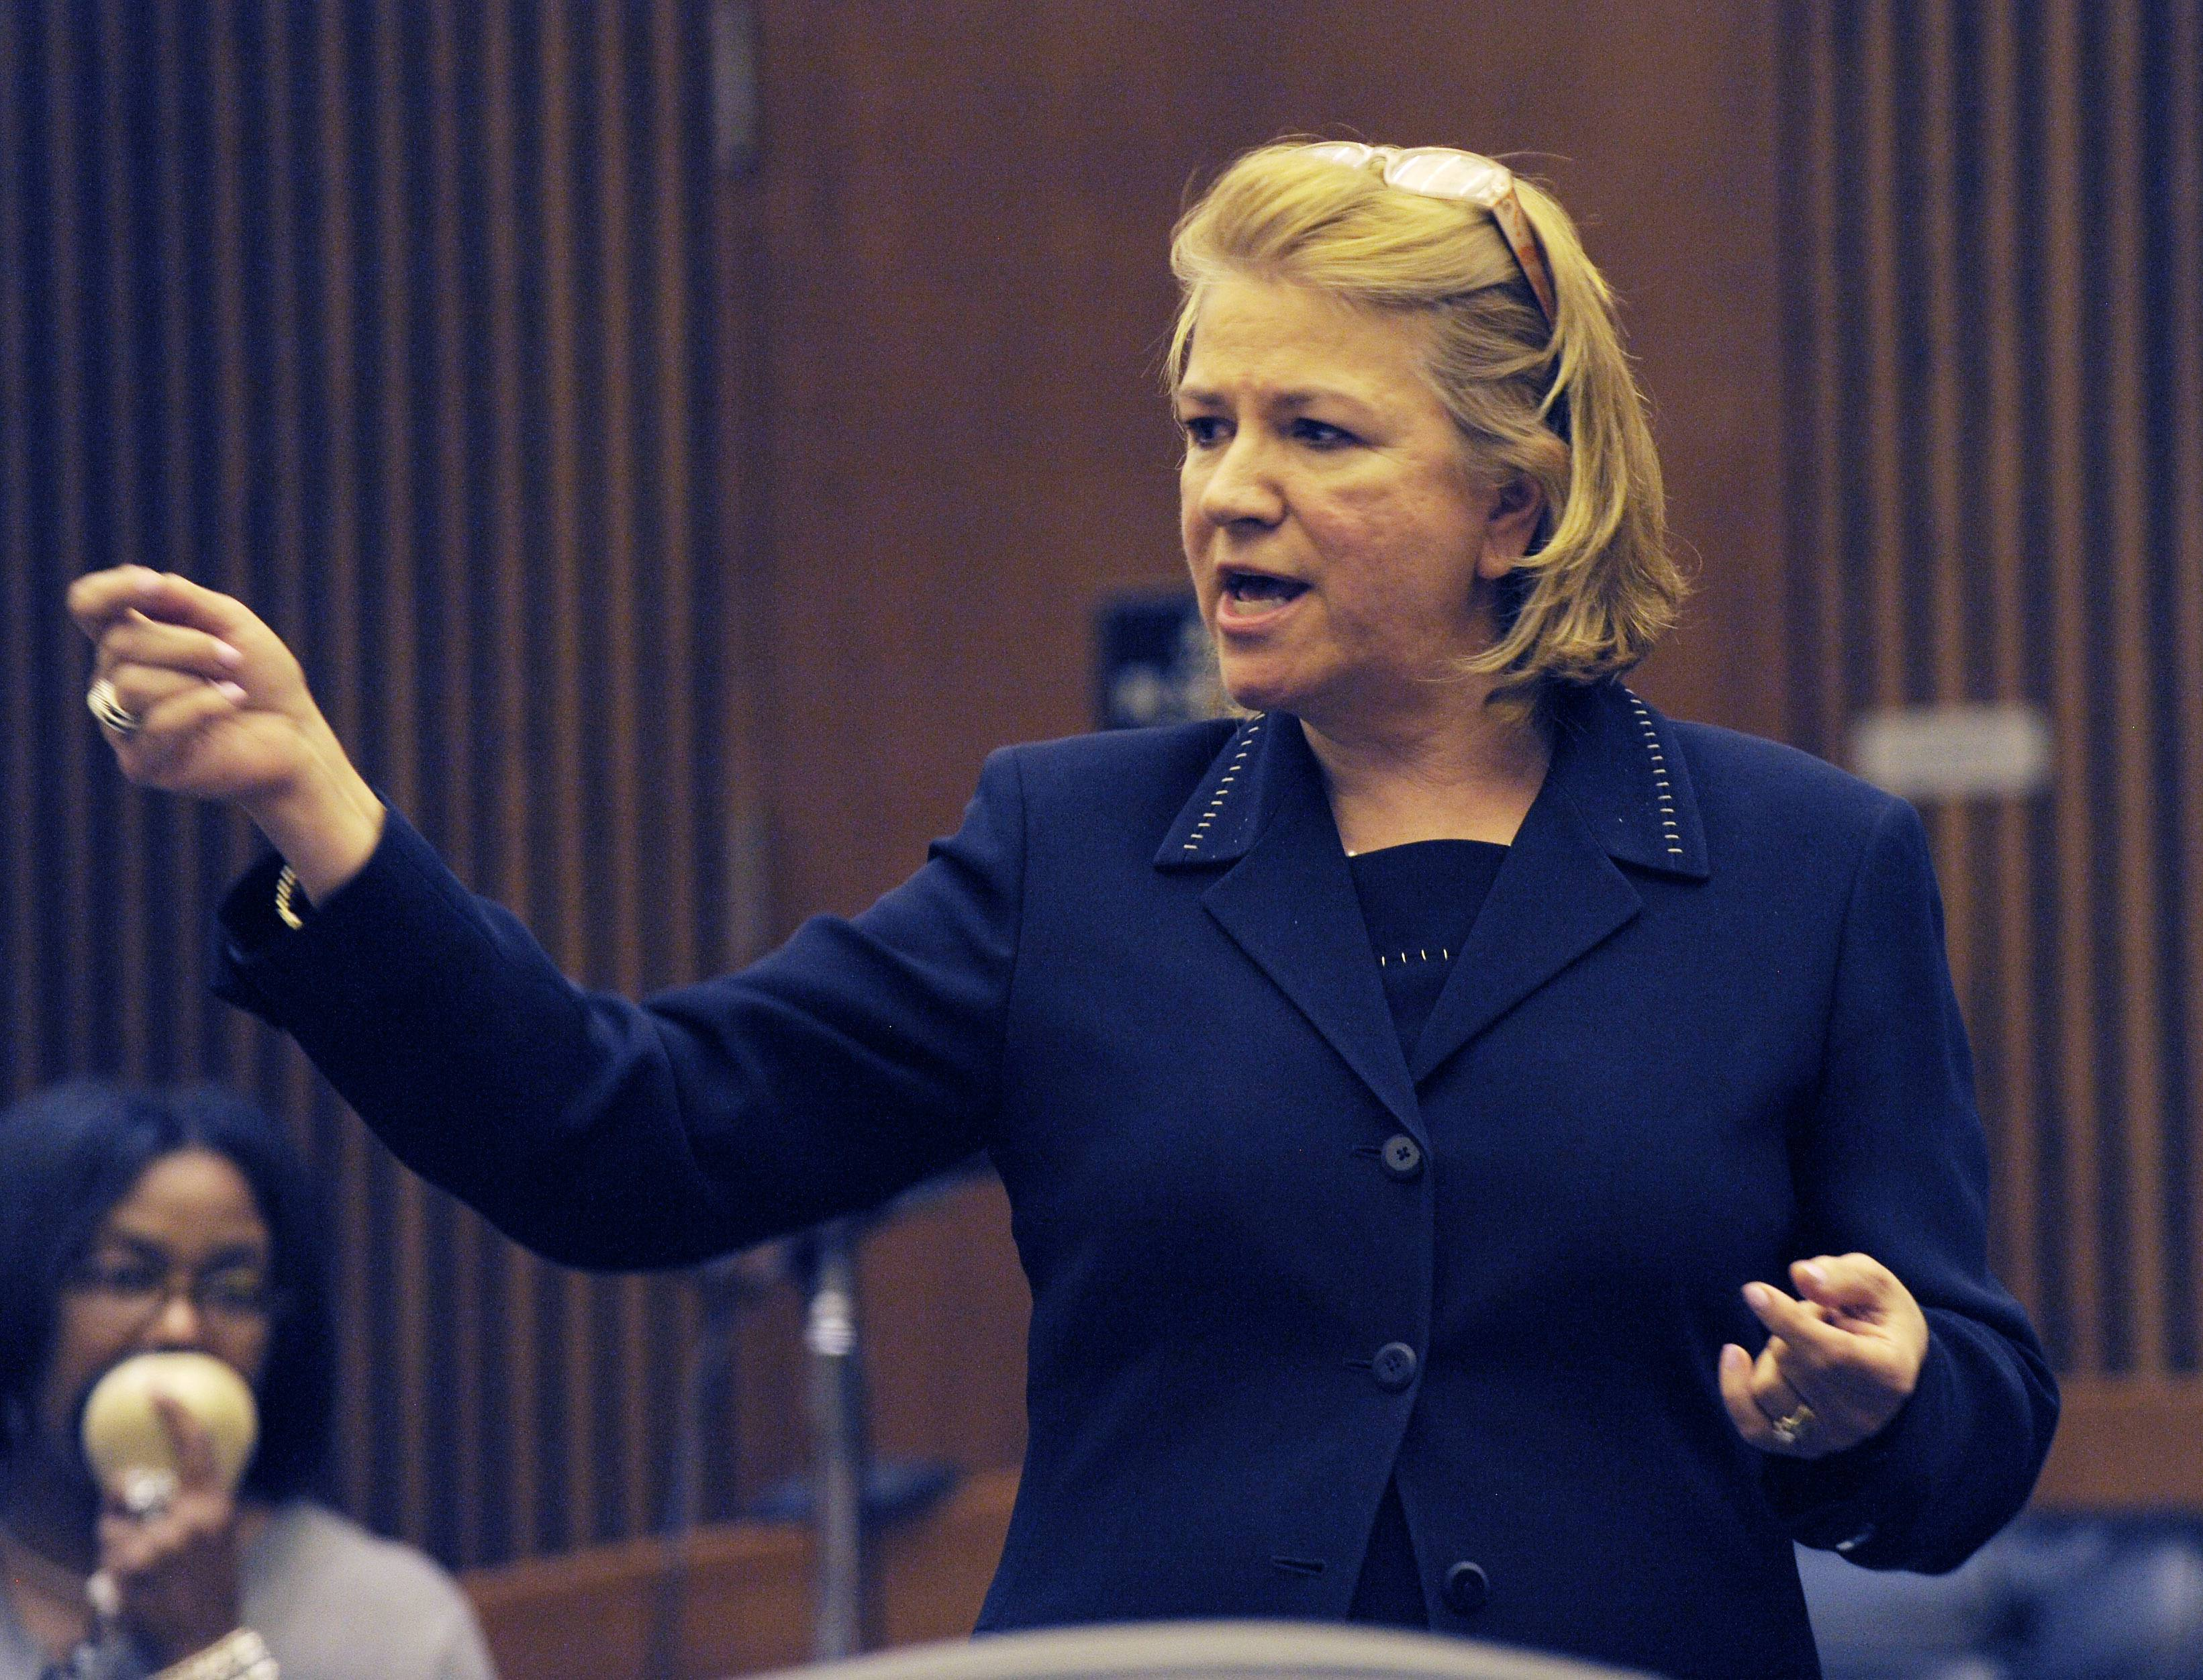 Asst. Prosecutor, Athina Siringas speaks during closing arguments in the Theodore Wafer case Wednesday, Aug. 6, 2014, in Detroit. The case of Wafer, a suburban Detroit homeowner who opened his front door and blasted an unarmed woman on his porch, has gone to the jury. Wafer is charged with second-degree murder and manslaughter in the death of 19-year-old Renisha McBride. (AP Photo/Detroit News, Clarence Tabb Jr.)